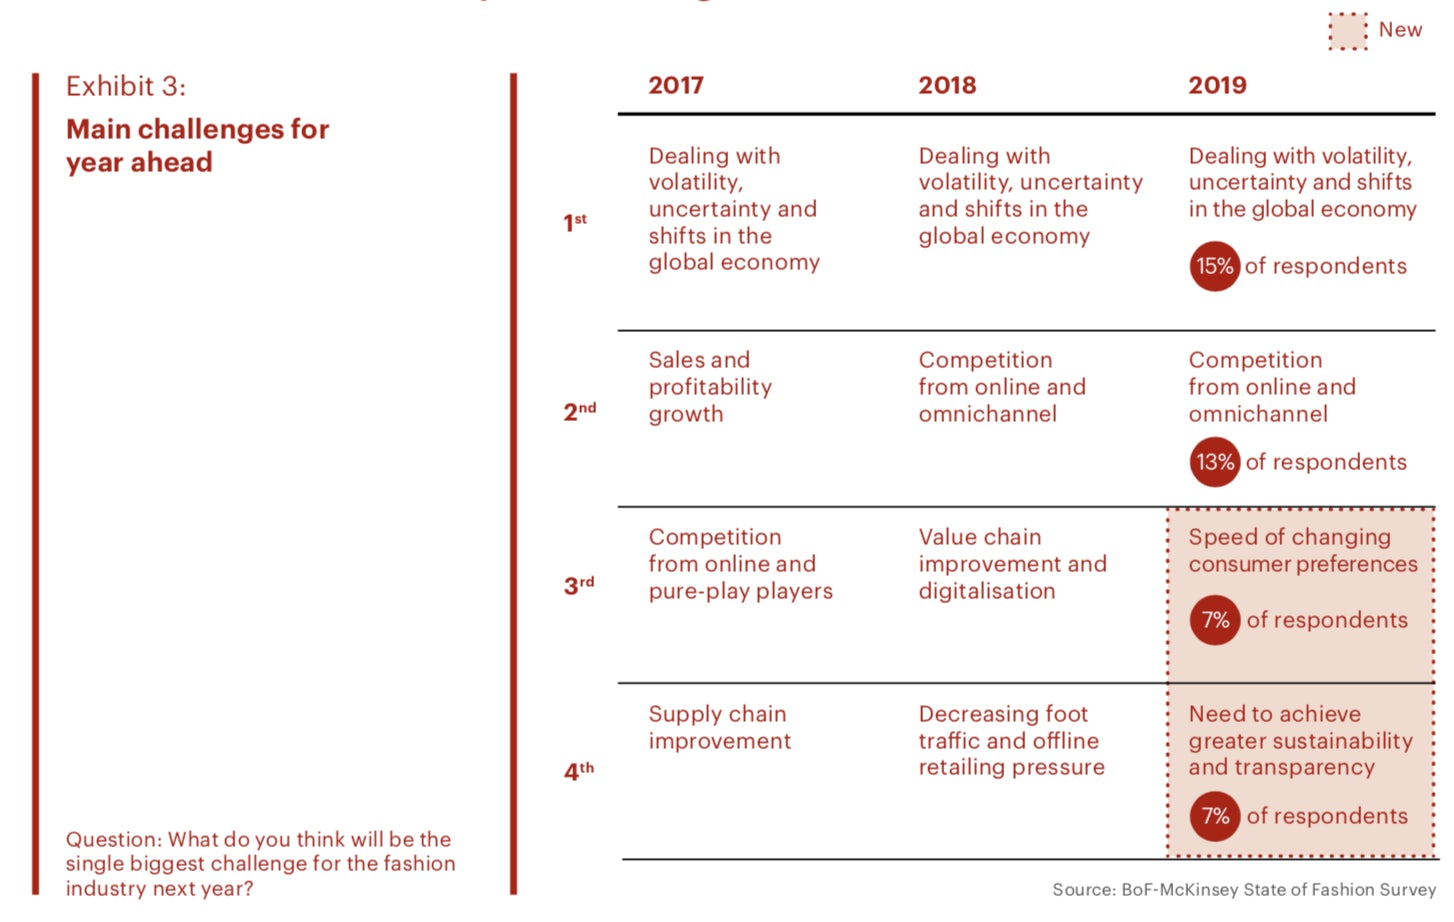 Volatility, uncertainty and shifts in the global economy is still foreseen as the industry's #1 challenge